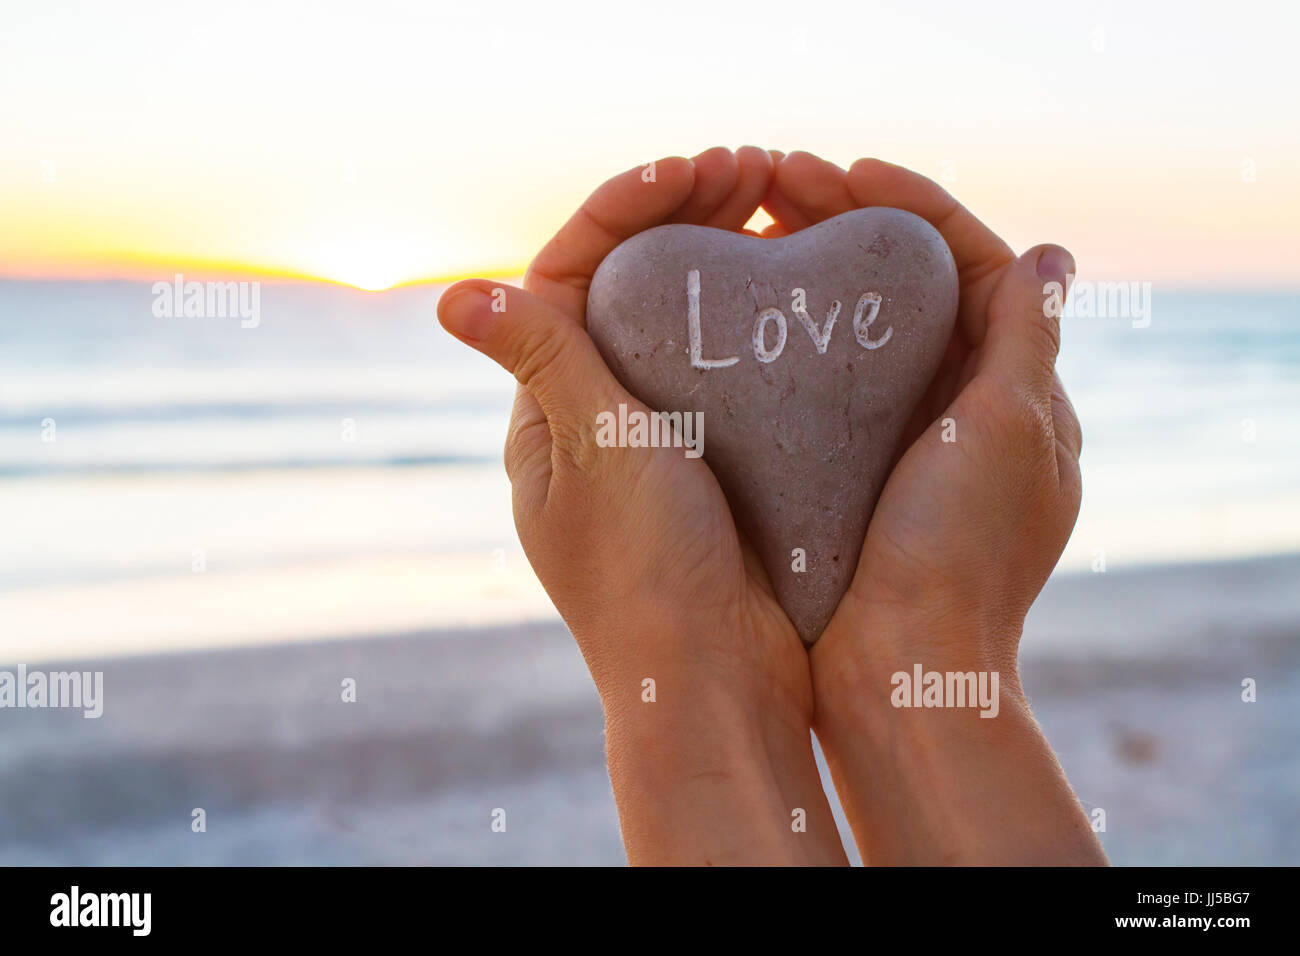 love concept, hands holding heart at sunset beach - Stock Image